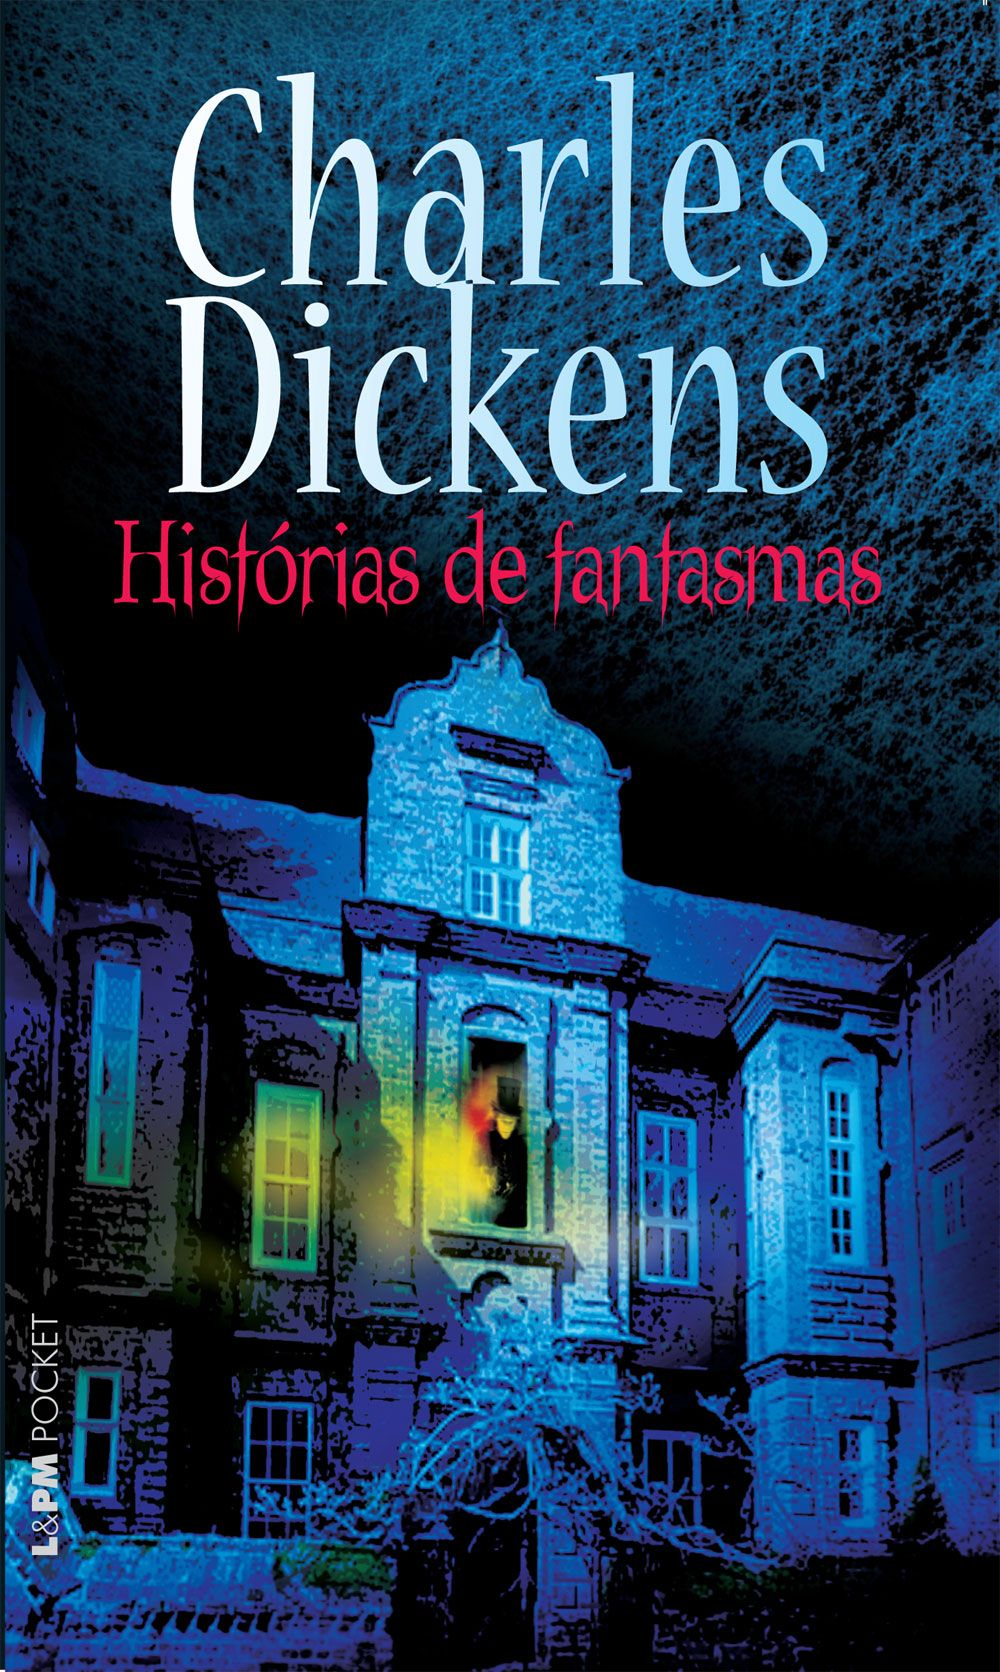 Download charles dickens epub